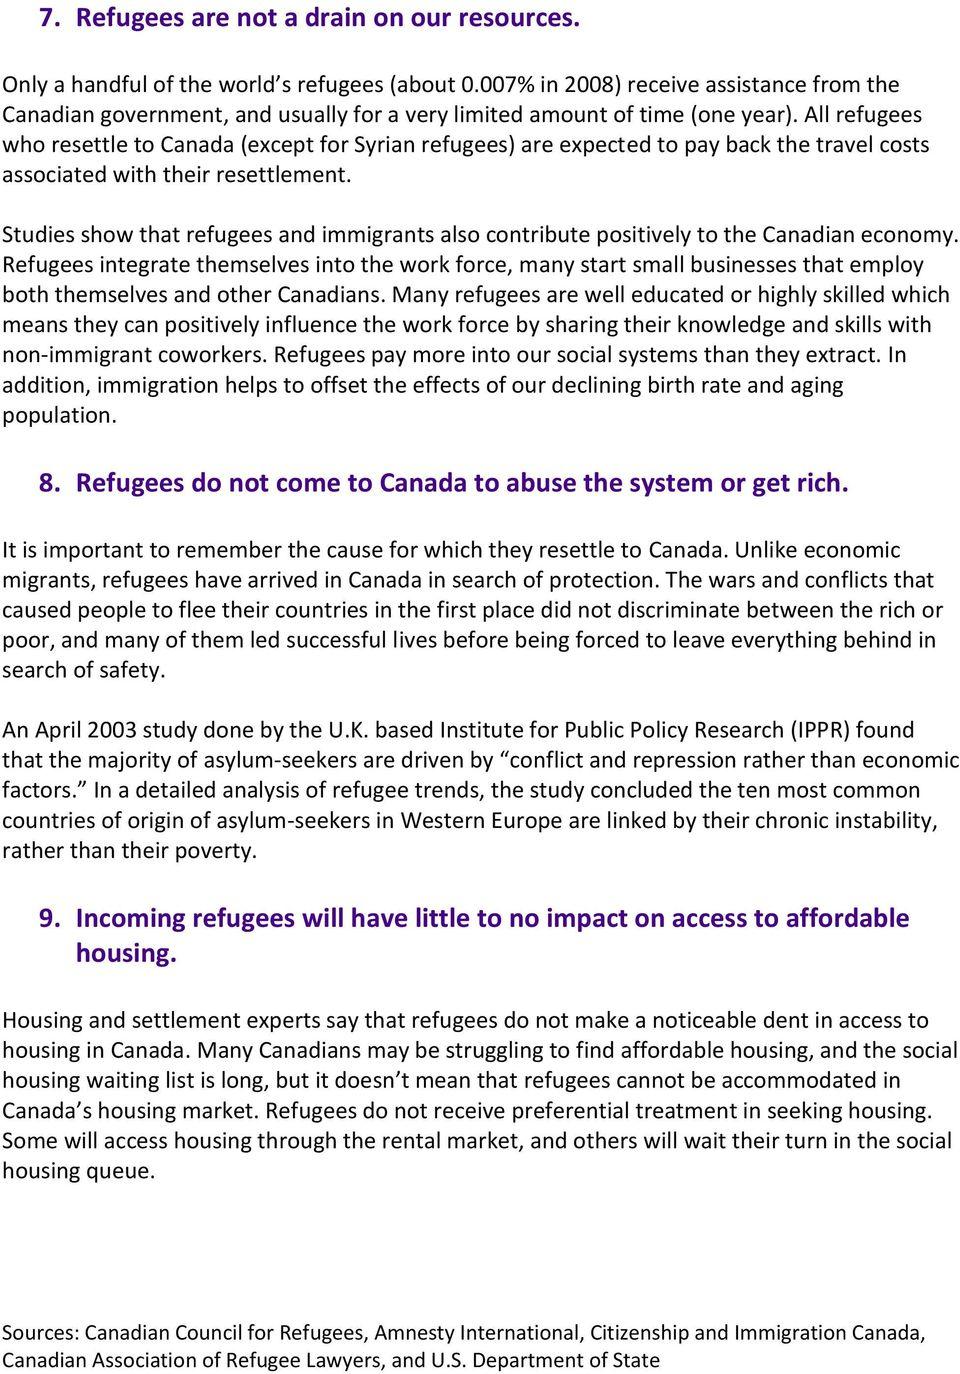 All refugees who resettle to Canada (except for Syrian refugees) are expected to pay back the travel costs associated with their resettlement.